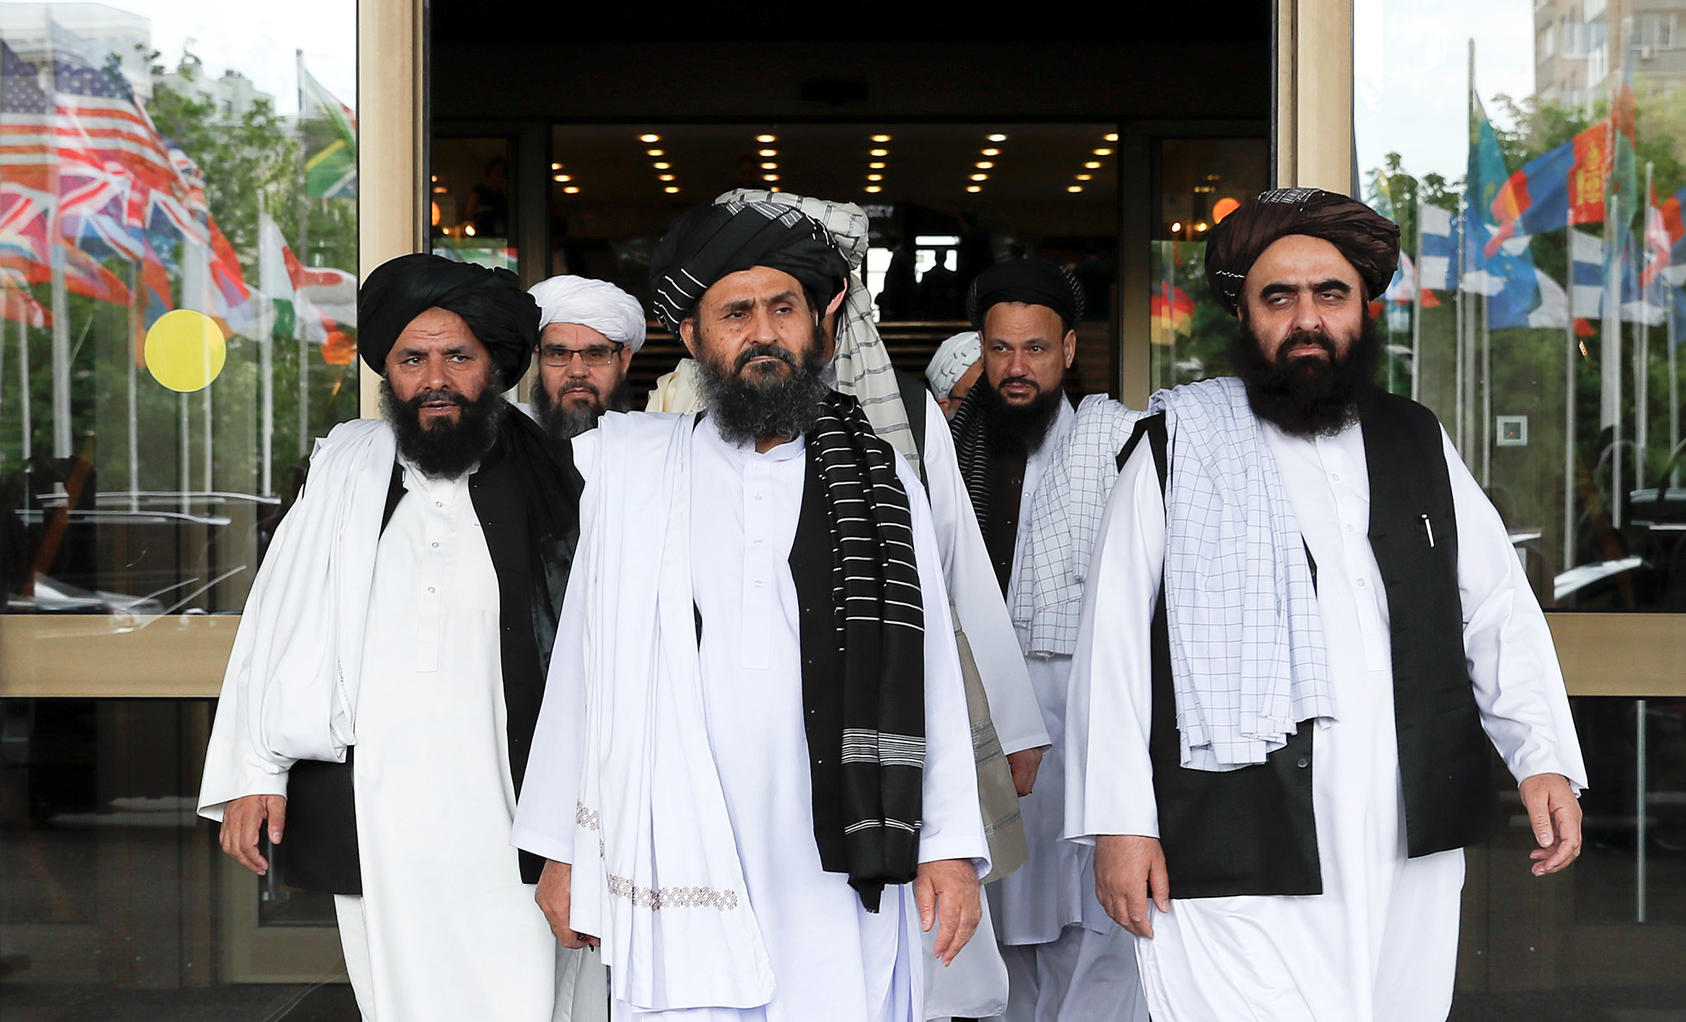 Members of a Taliban delegation, led by chief negotiator Mullah Abdul Ghani Baradar, after peace talks with senior Afghan politicians in Moscow on May 30, 2019. (Evgenia Novozhenina/Reuters)